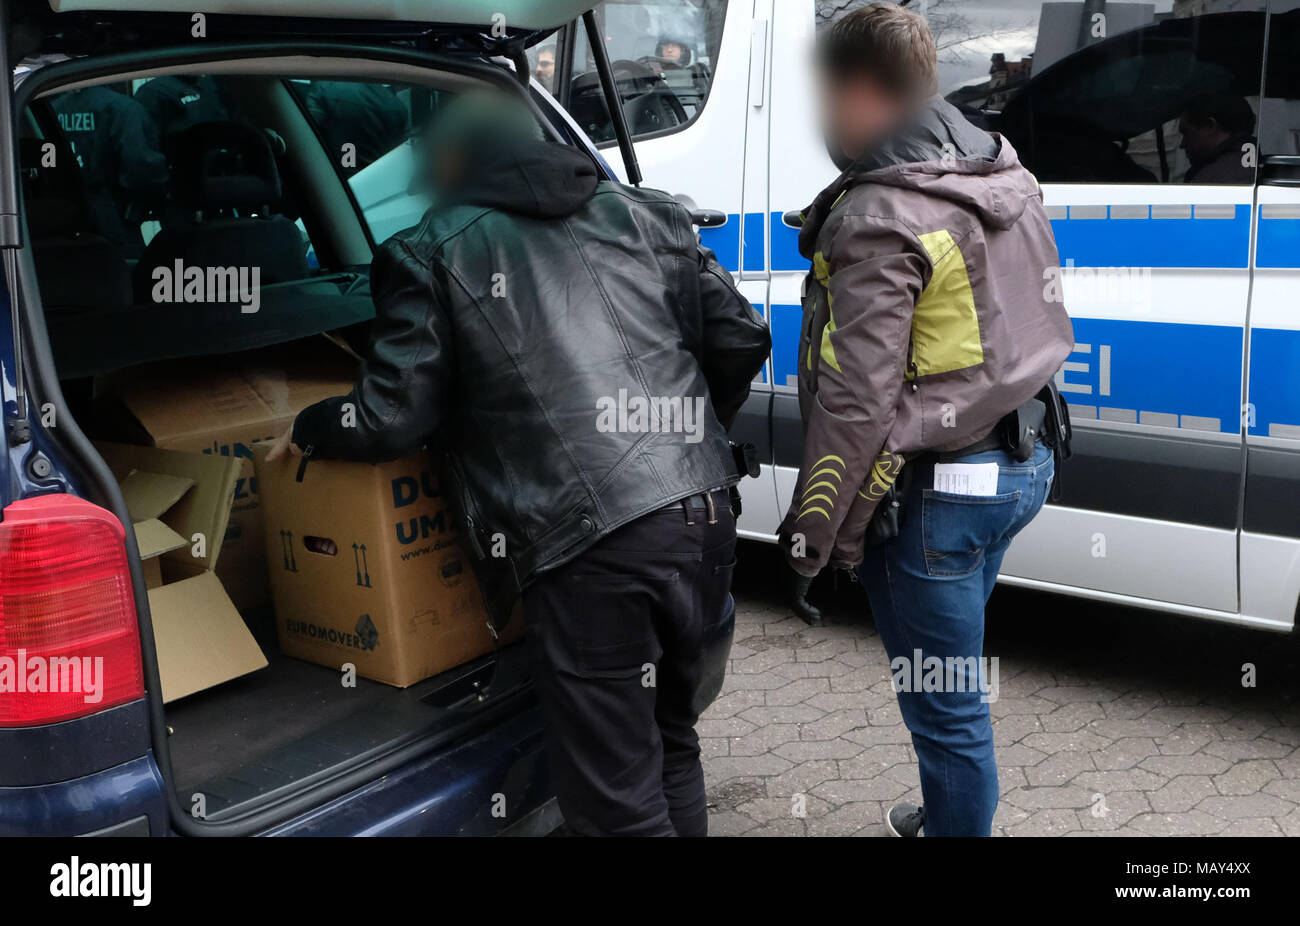 Hannover, Germany. 05 April 2018, Germany, Hannover: Two police officers in civil clothing carrying boxes of confiscated documents to a car during a raid of the Kurdish democratic social centre in Hannover. The association is, according to itself, the umbrella organisation of the Kurdish People's Council. Photo: Peter Steffen/dpa - ACHTUNG: Die Personen wurden auf Anforderung der Polizei zum Schutz der Identität der Beamten gepixelt. Credit: dpa picture alliance/Alamy Live News - Stock Image